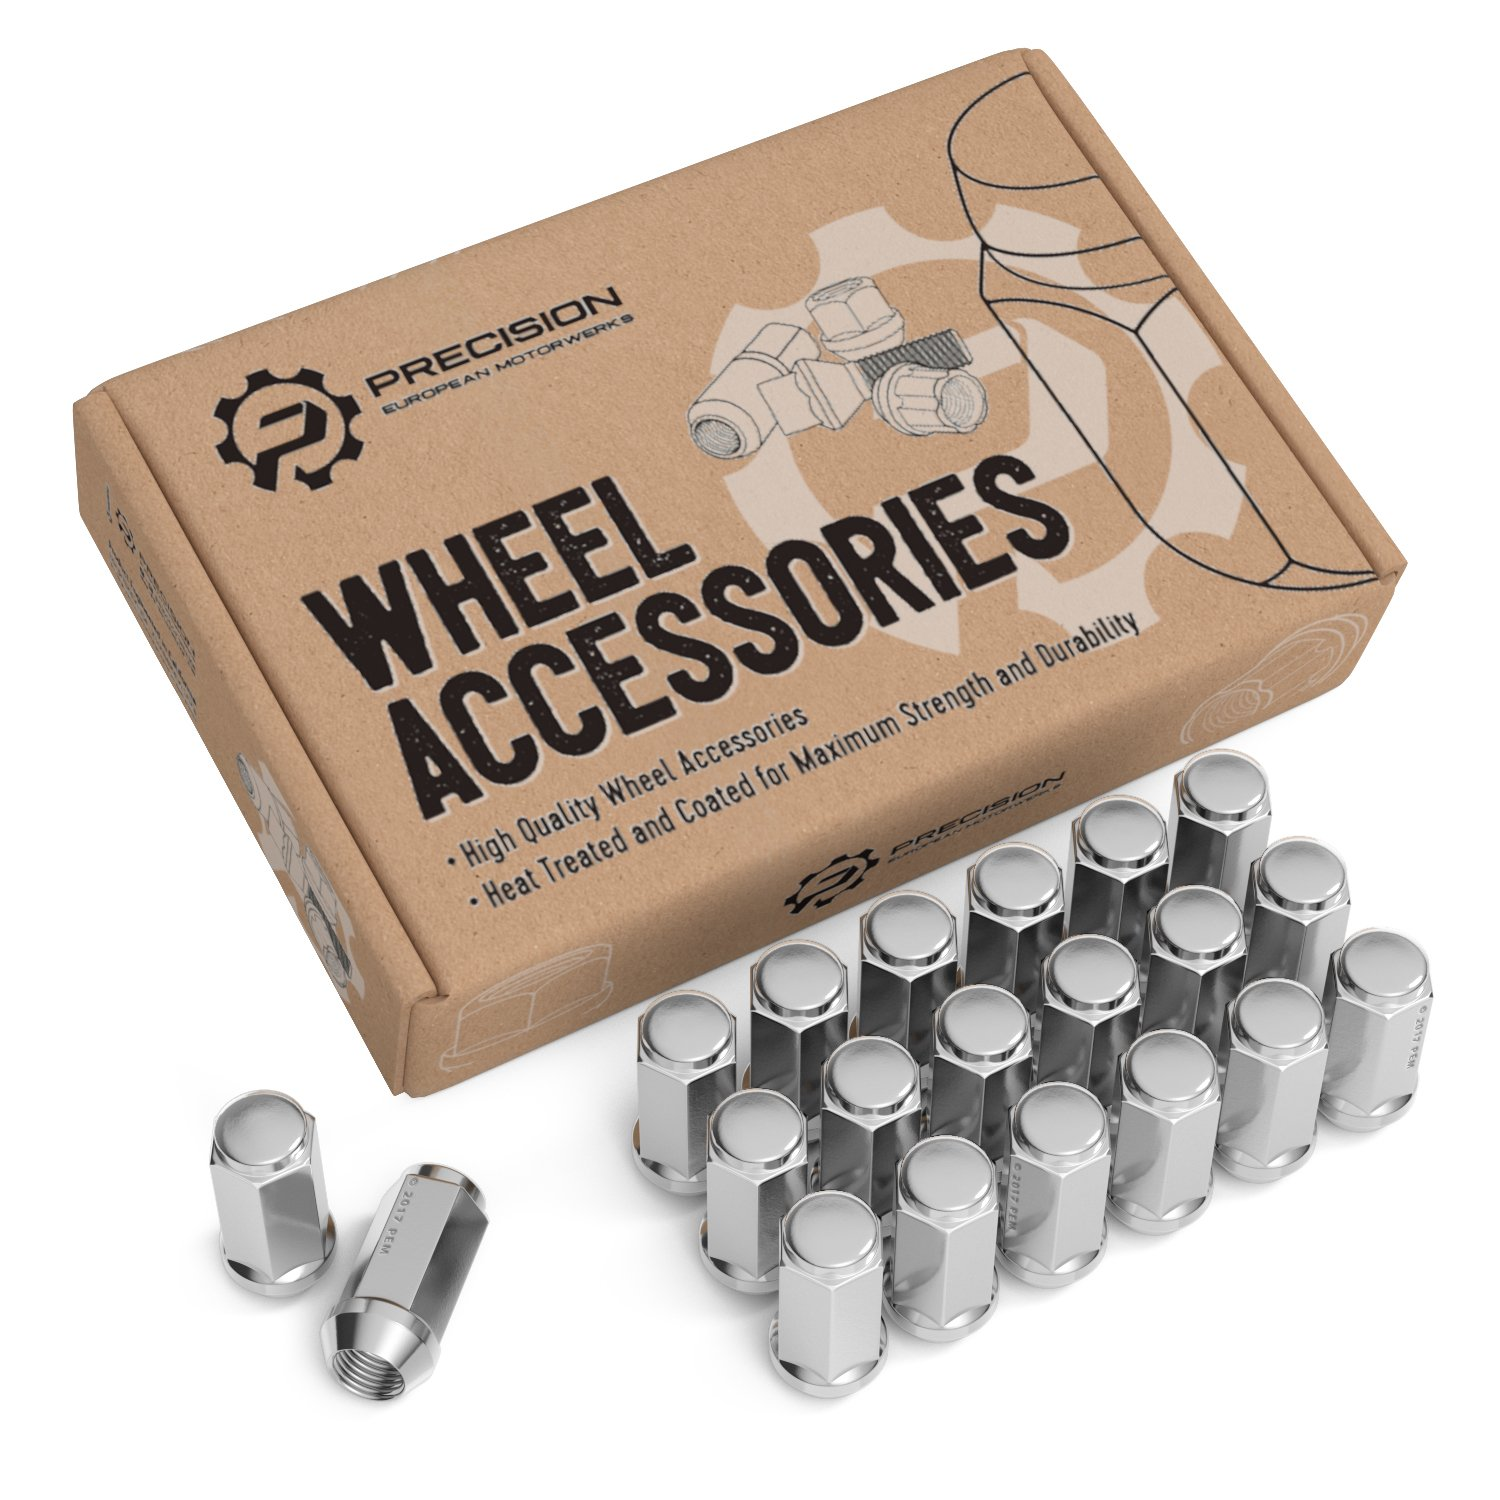 20pc Chrome Silver Bulge Lug Nuts 1/2''-20 Thread Size - Conical Cone Taper Acorn Seat Closed End - 1.4'' Length - for Jeep Cherokee Wrangler Liberty Rubicon CJ3 CJ5 CJ6 CJ7 Scrambler Sahara + More